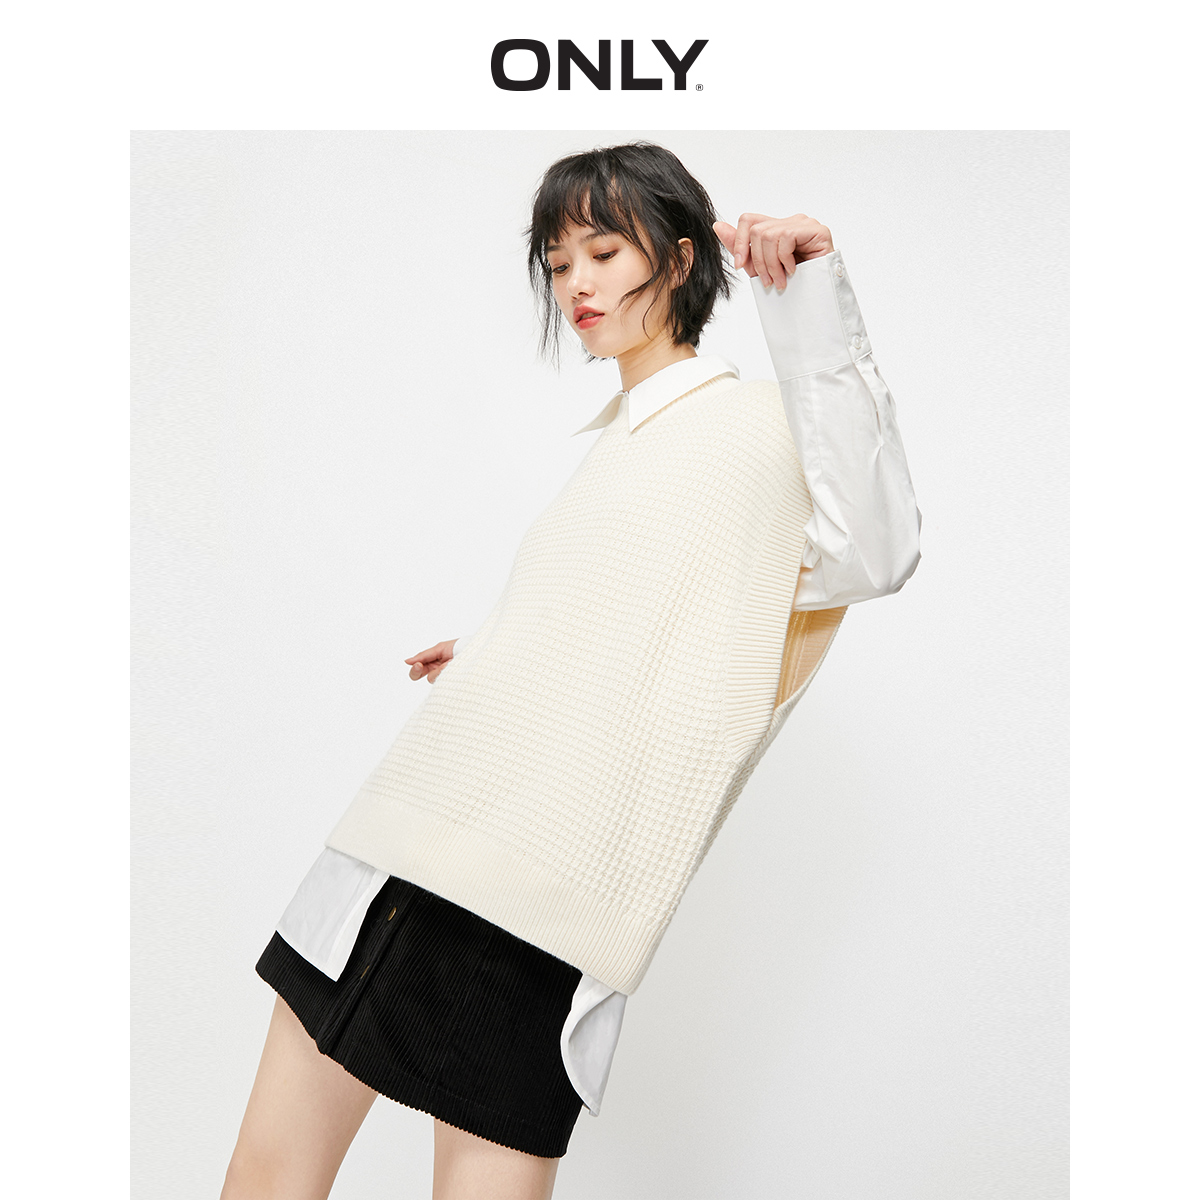 Only2020 spring new two piece knitted loose shirt dress for women 120146520